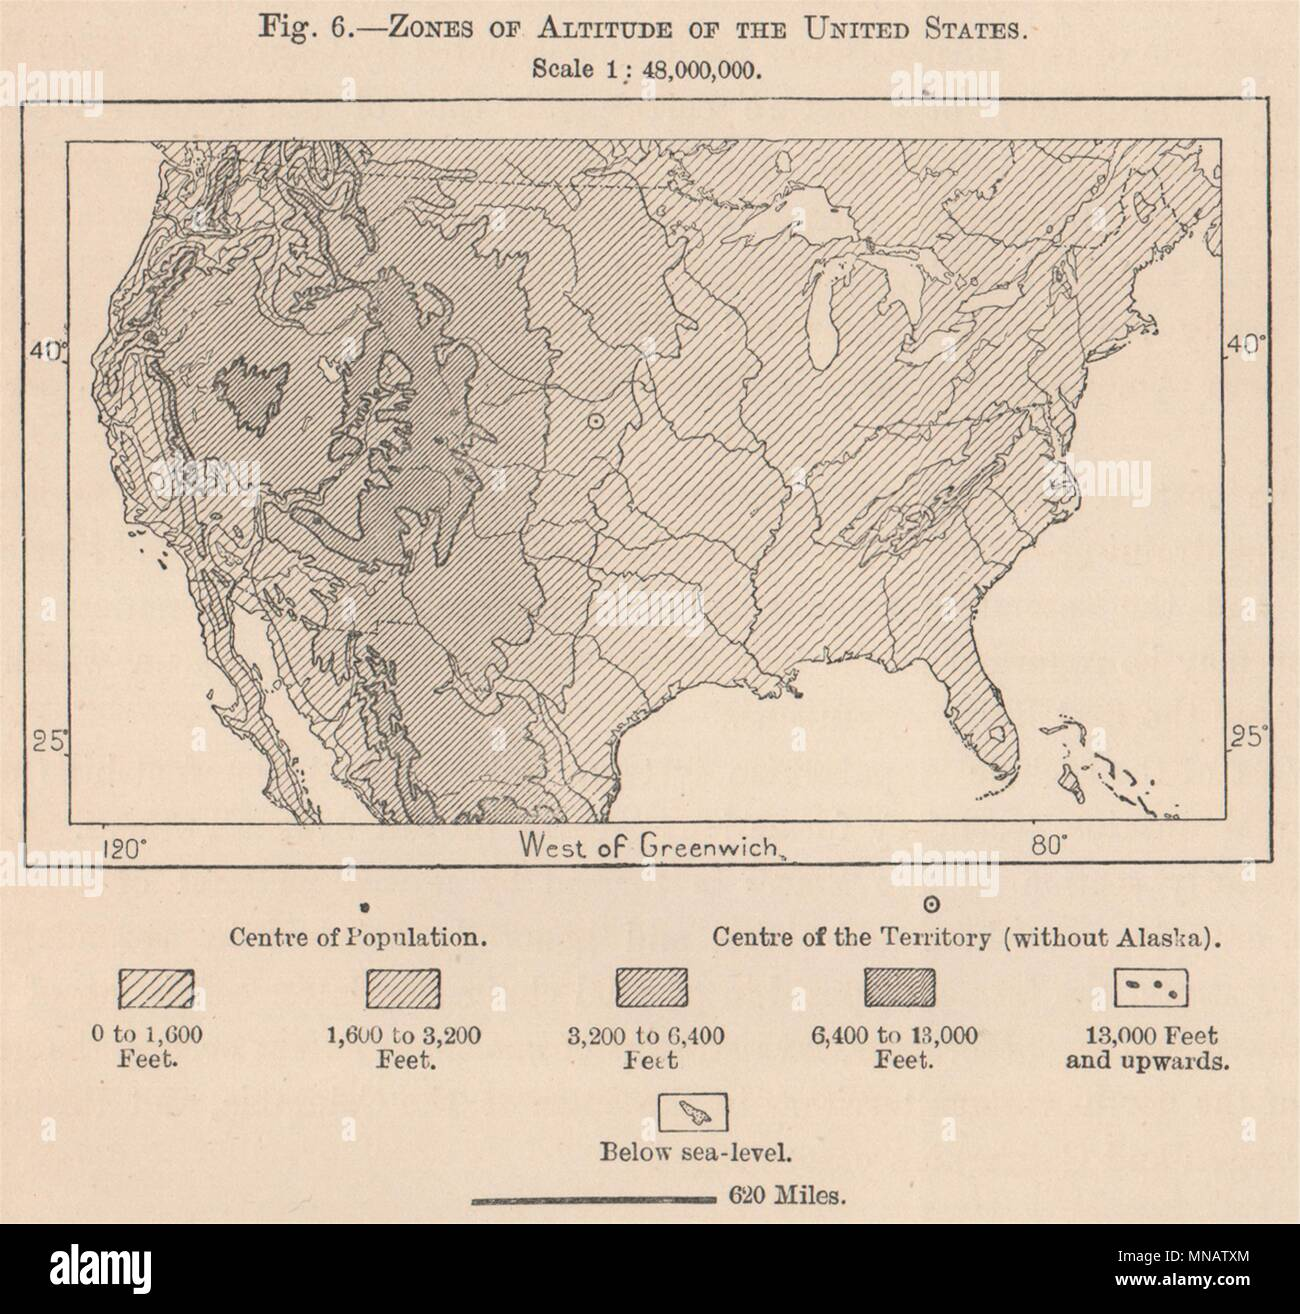 Zones of Altitude of the United States. USA 1885 old antique map ...